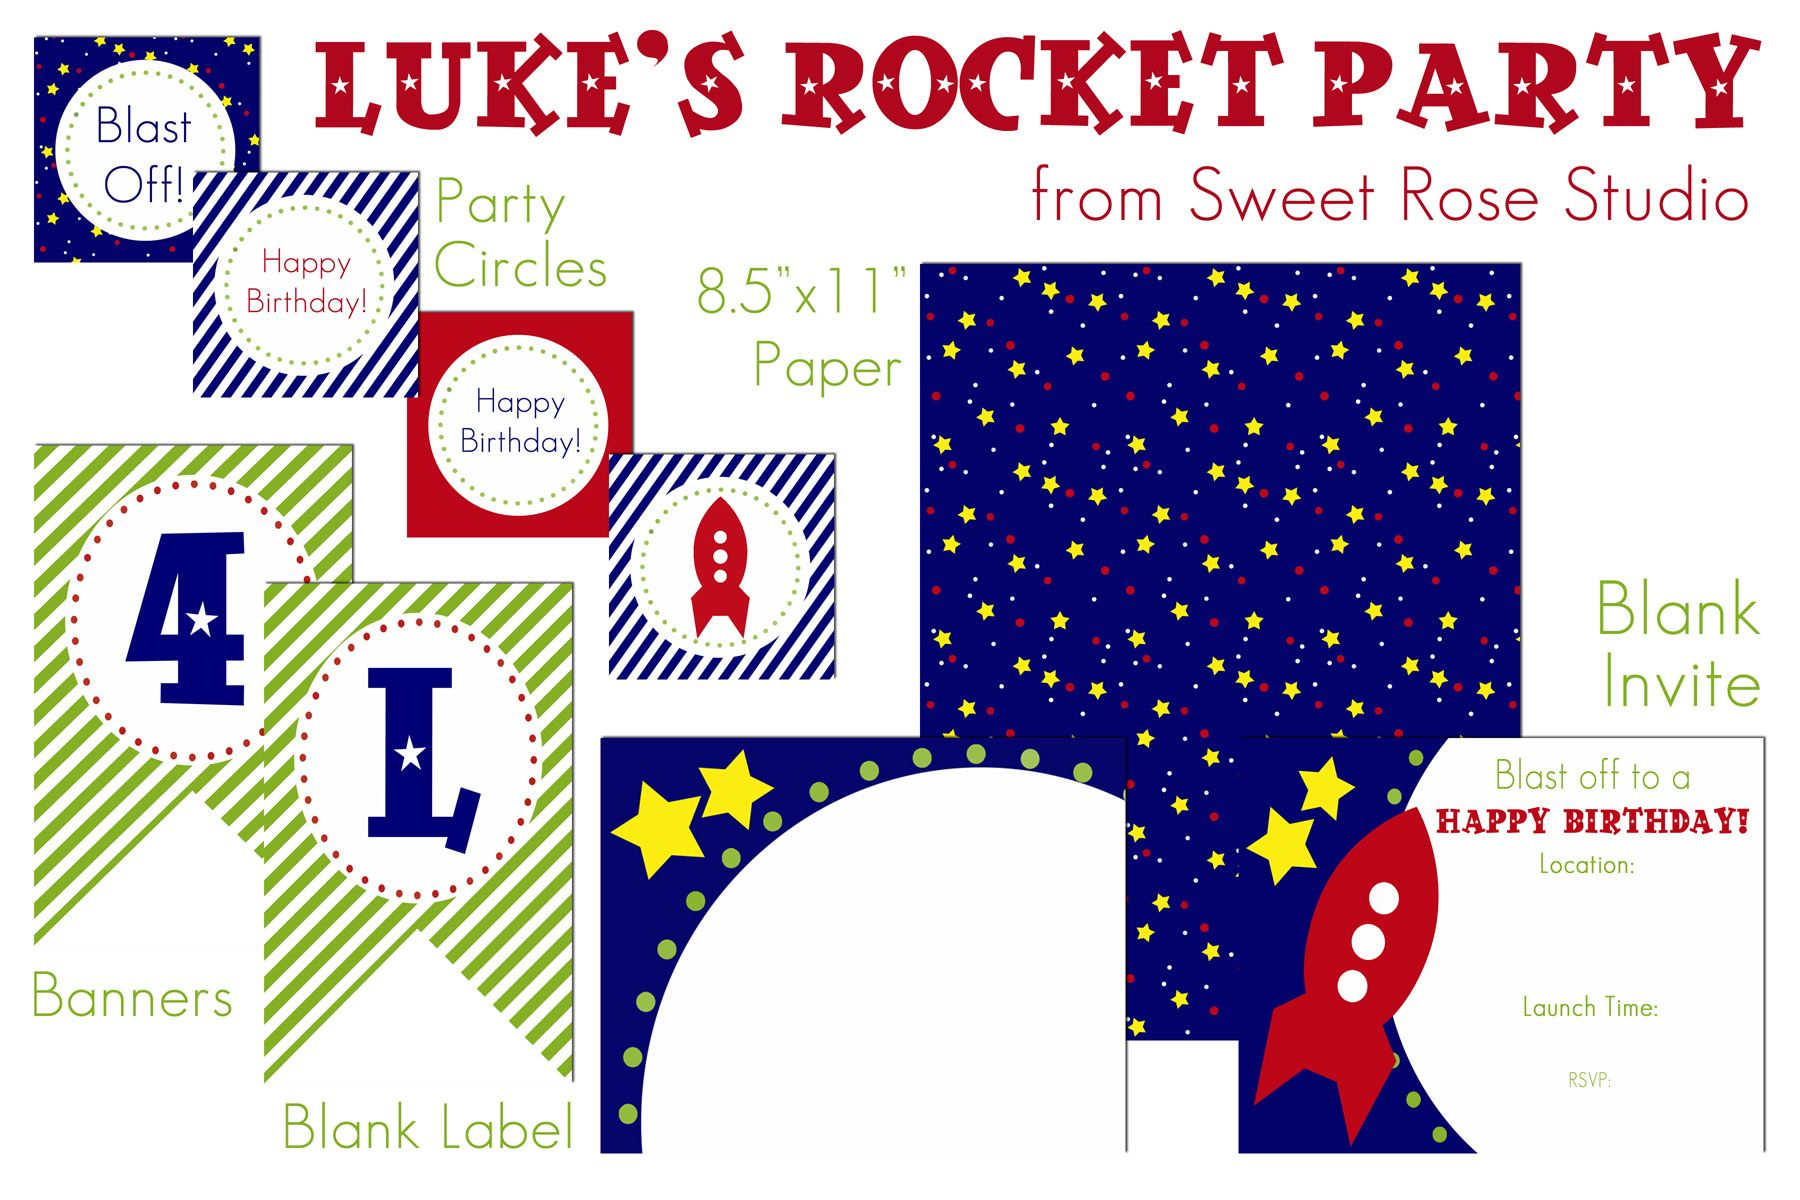 Luke's Rocket Party: The Printables!